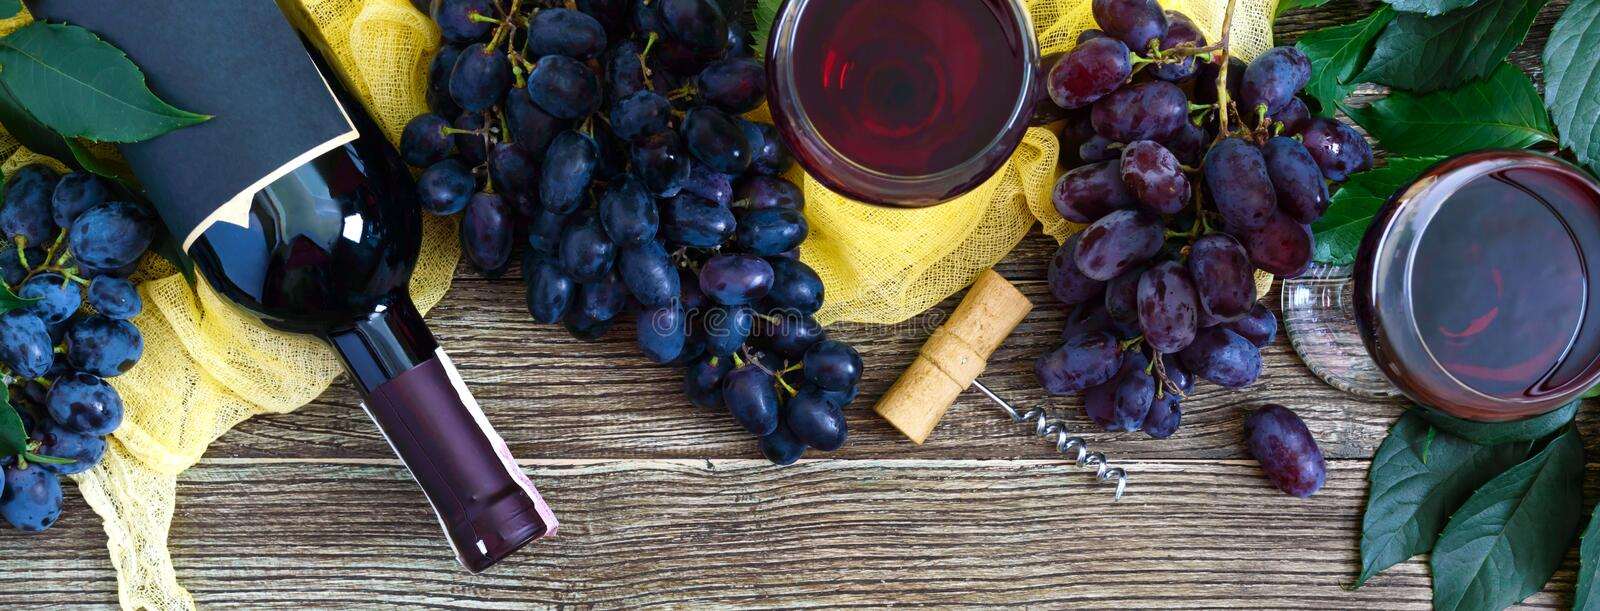 Wineglasses with red wine, bottle, corkscrew, blue grapes, leaves on a wooden table. Wine background with copy space. Top view, royalty free stock photo